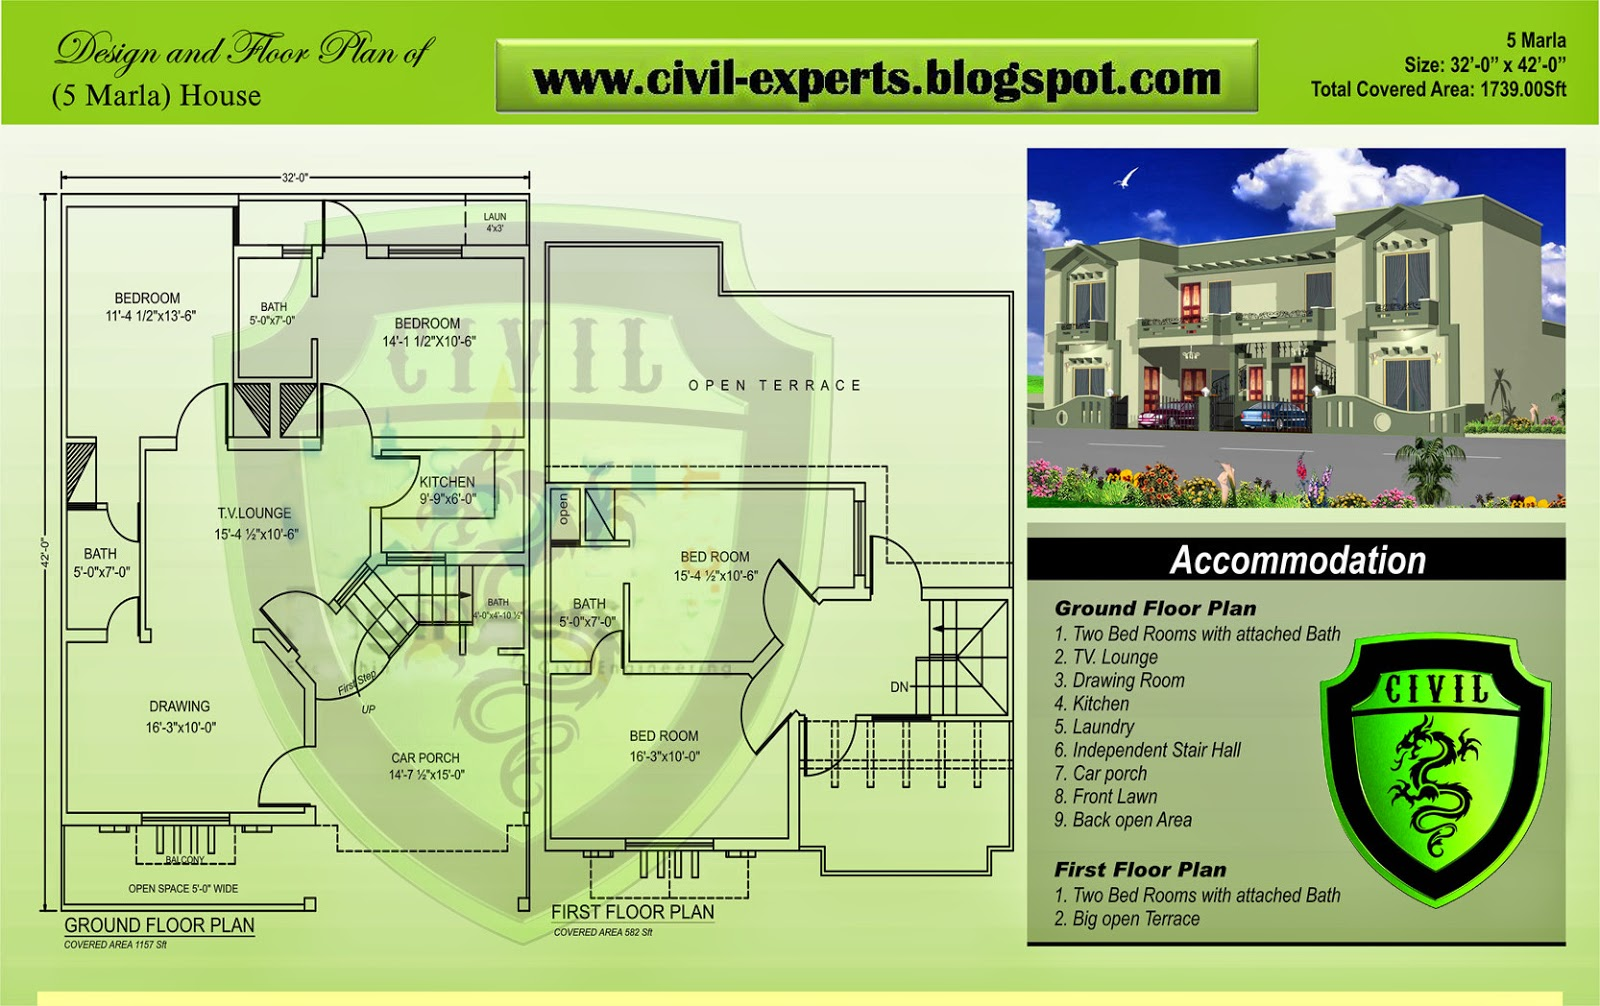 Civil experts 5 marla houses plans 5 marla house plan 3d